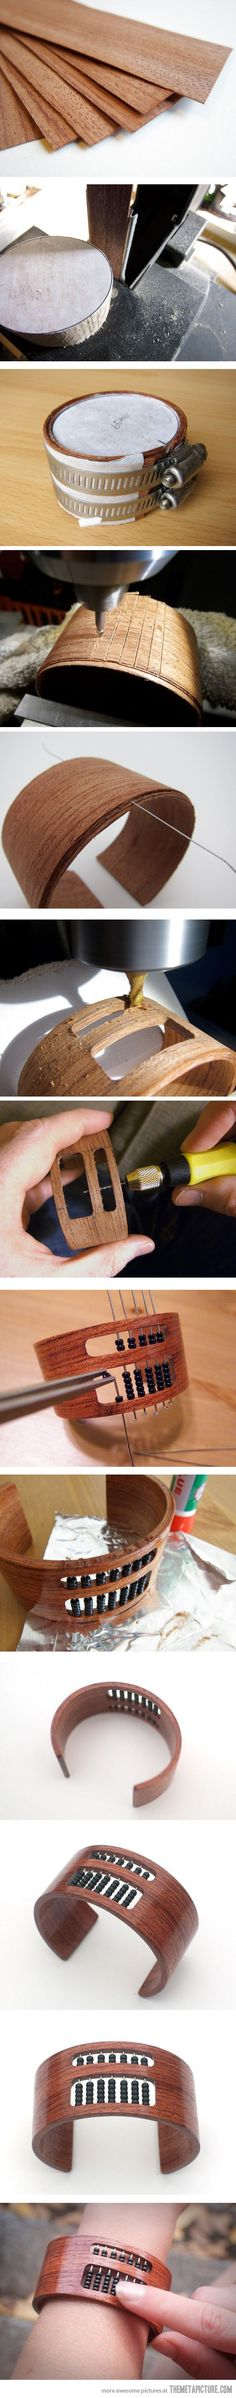 Not hipster enough? Try this--I actually think this is pretty cool.  I would totally love to make something like this!